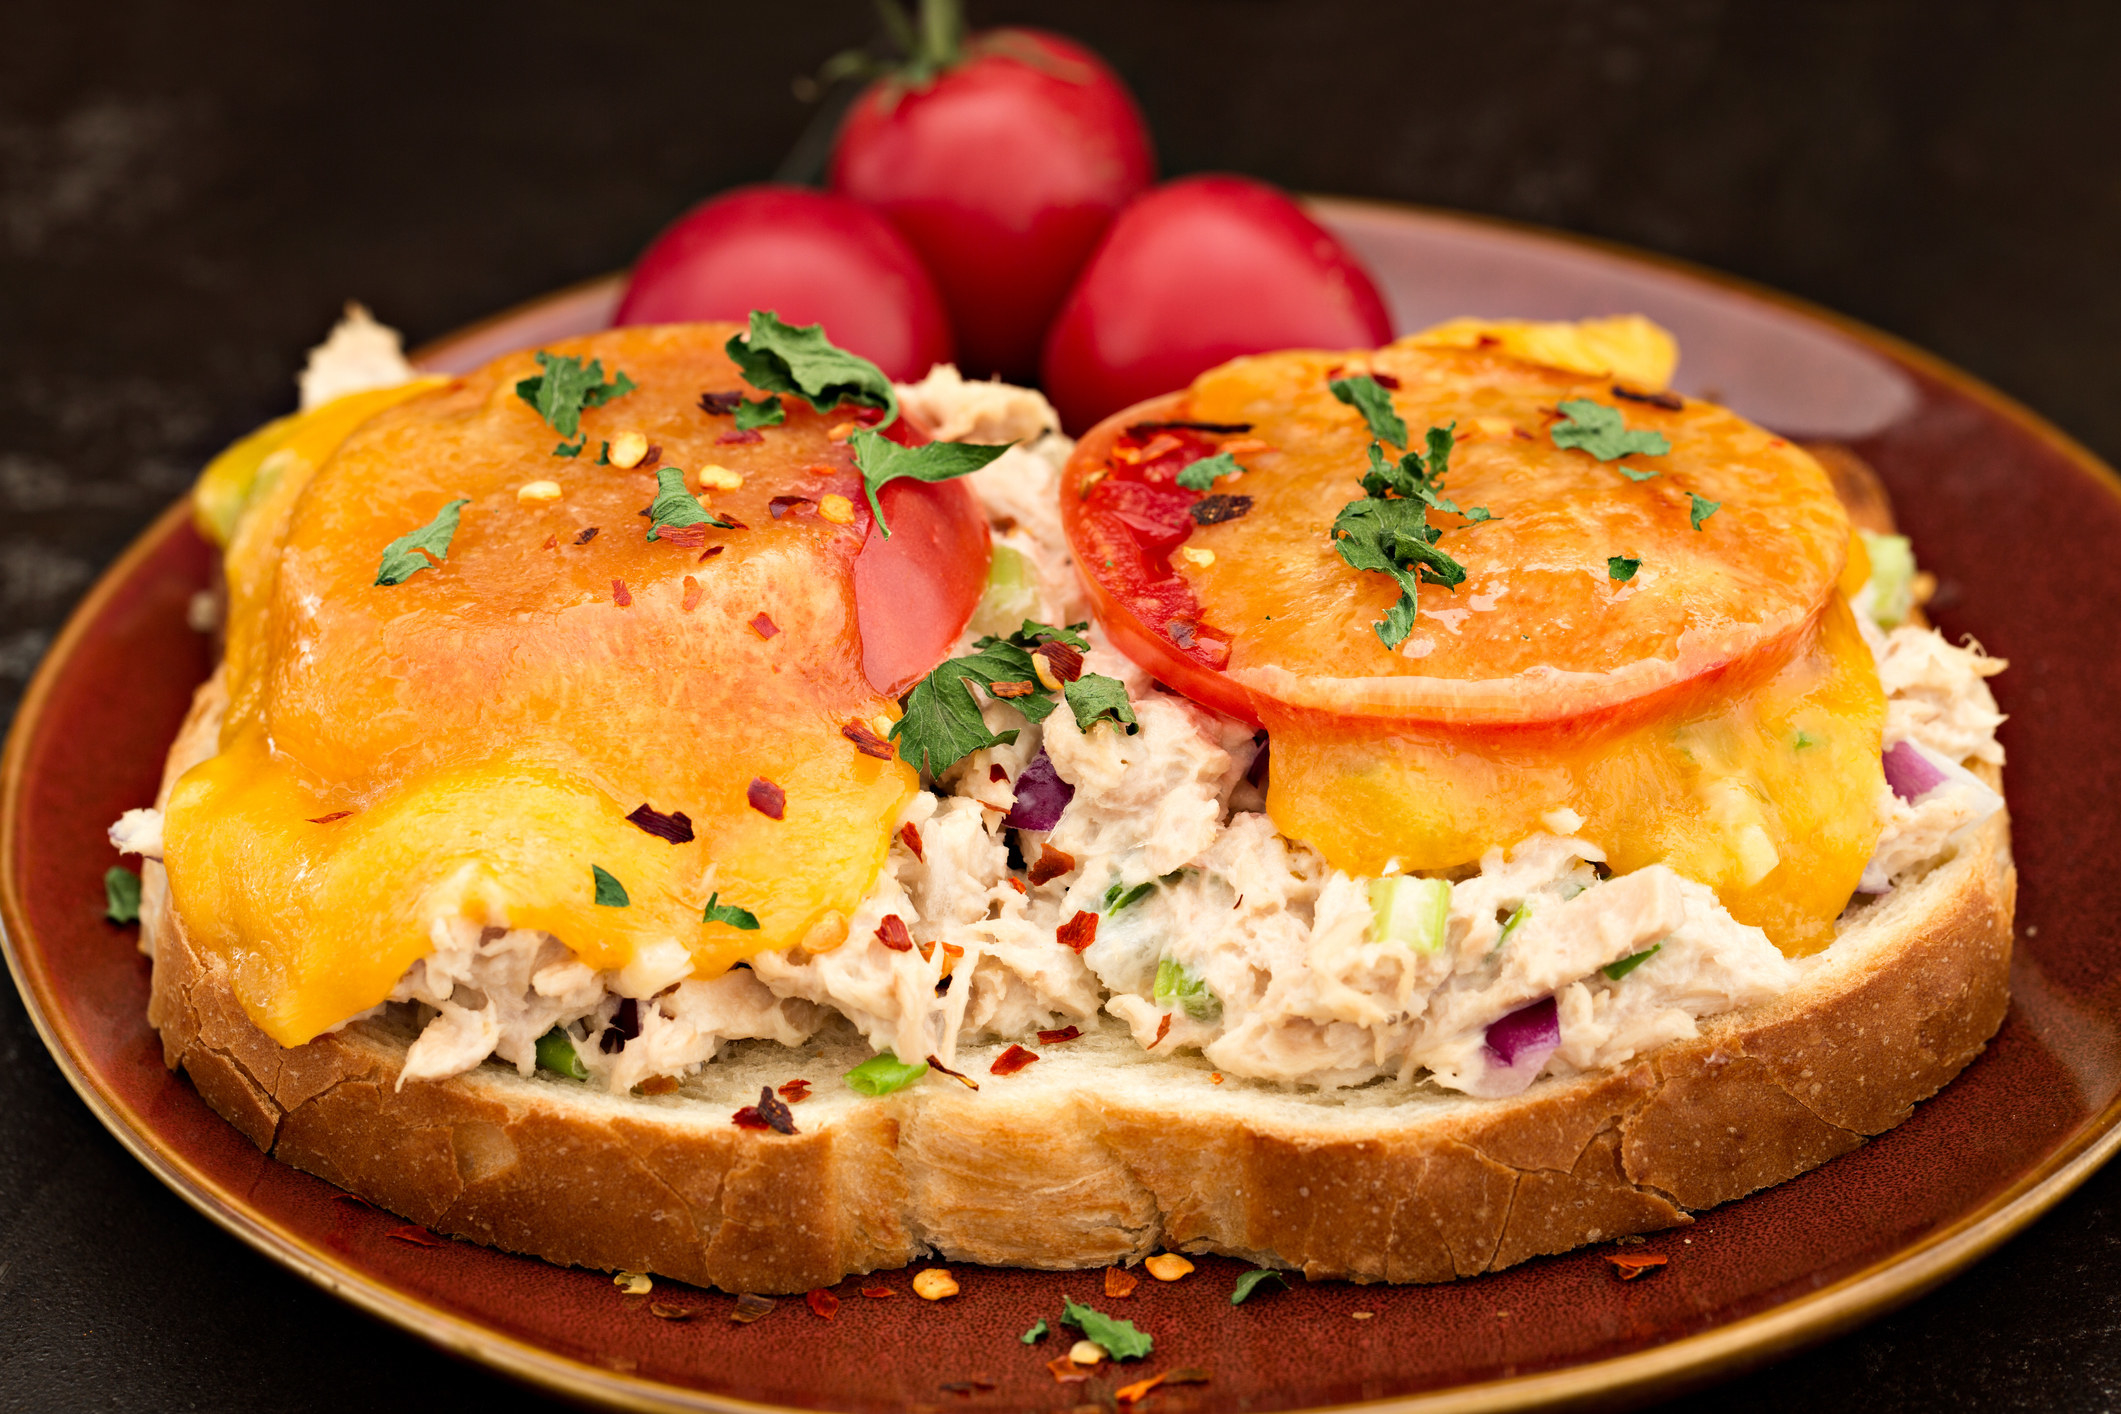 A tuna melt topped with cheese and sliced tomatoes.